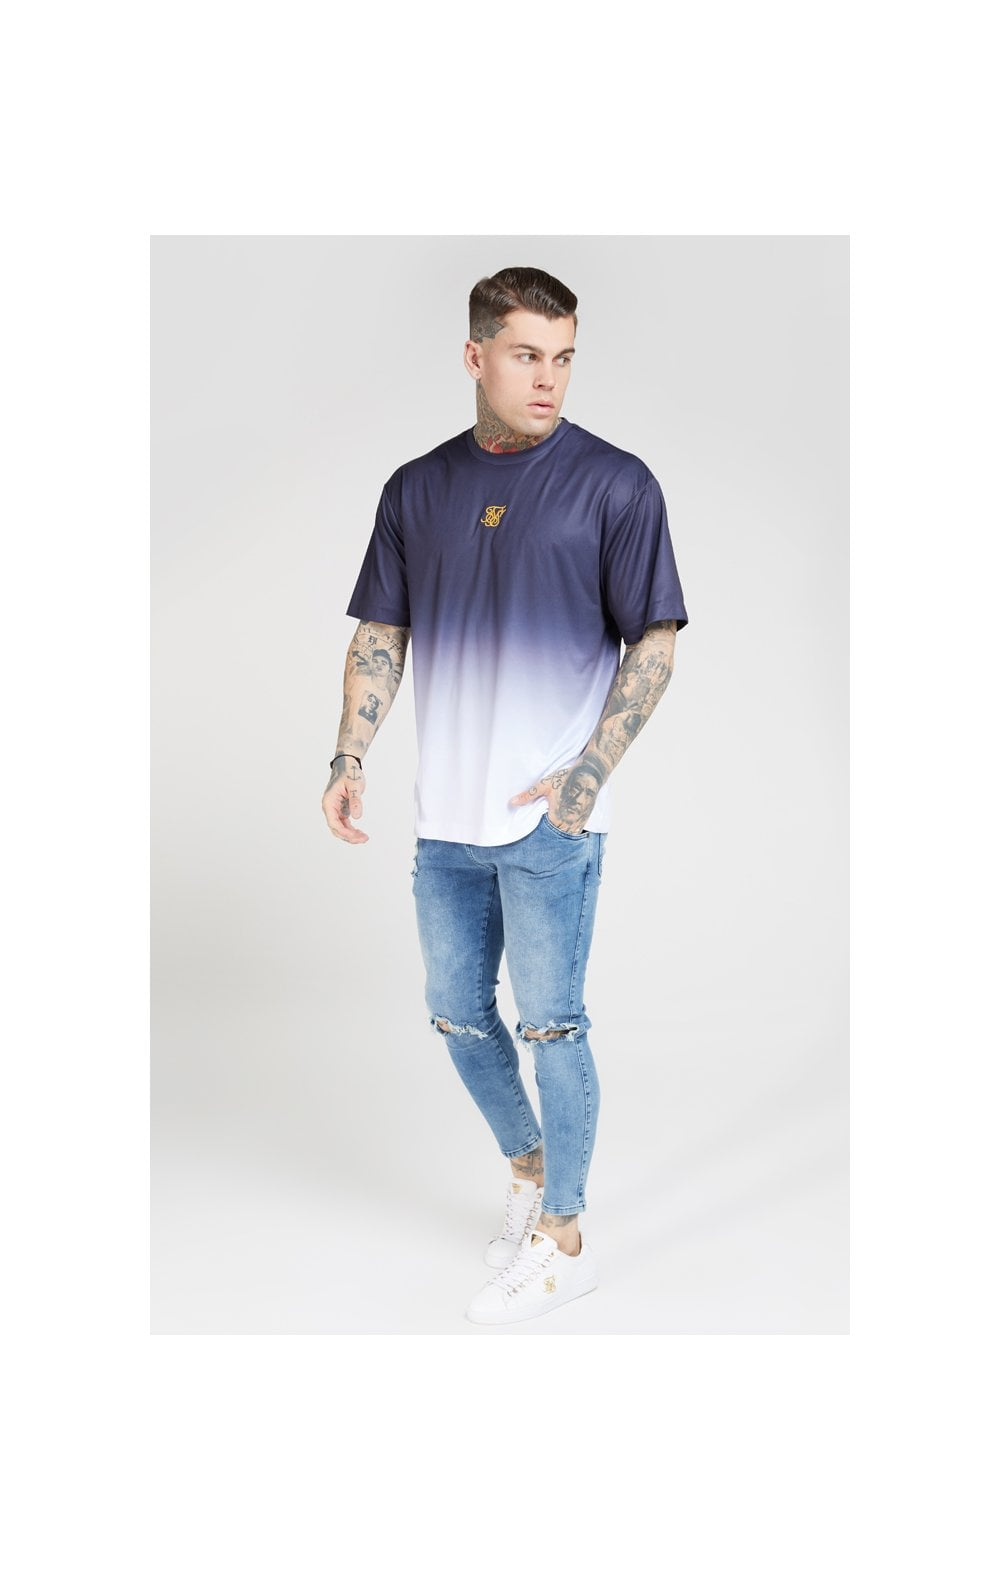 SikSilk S/S Essential Tee - Navy & White (3)